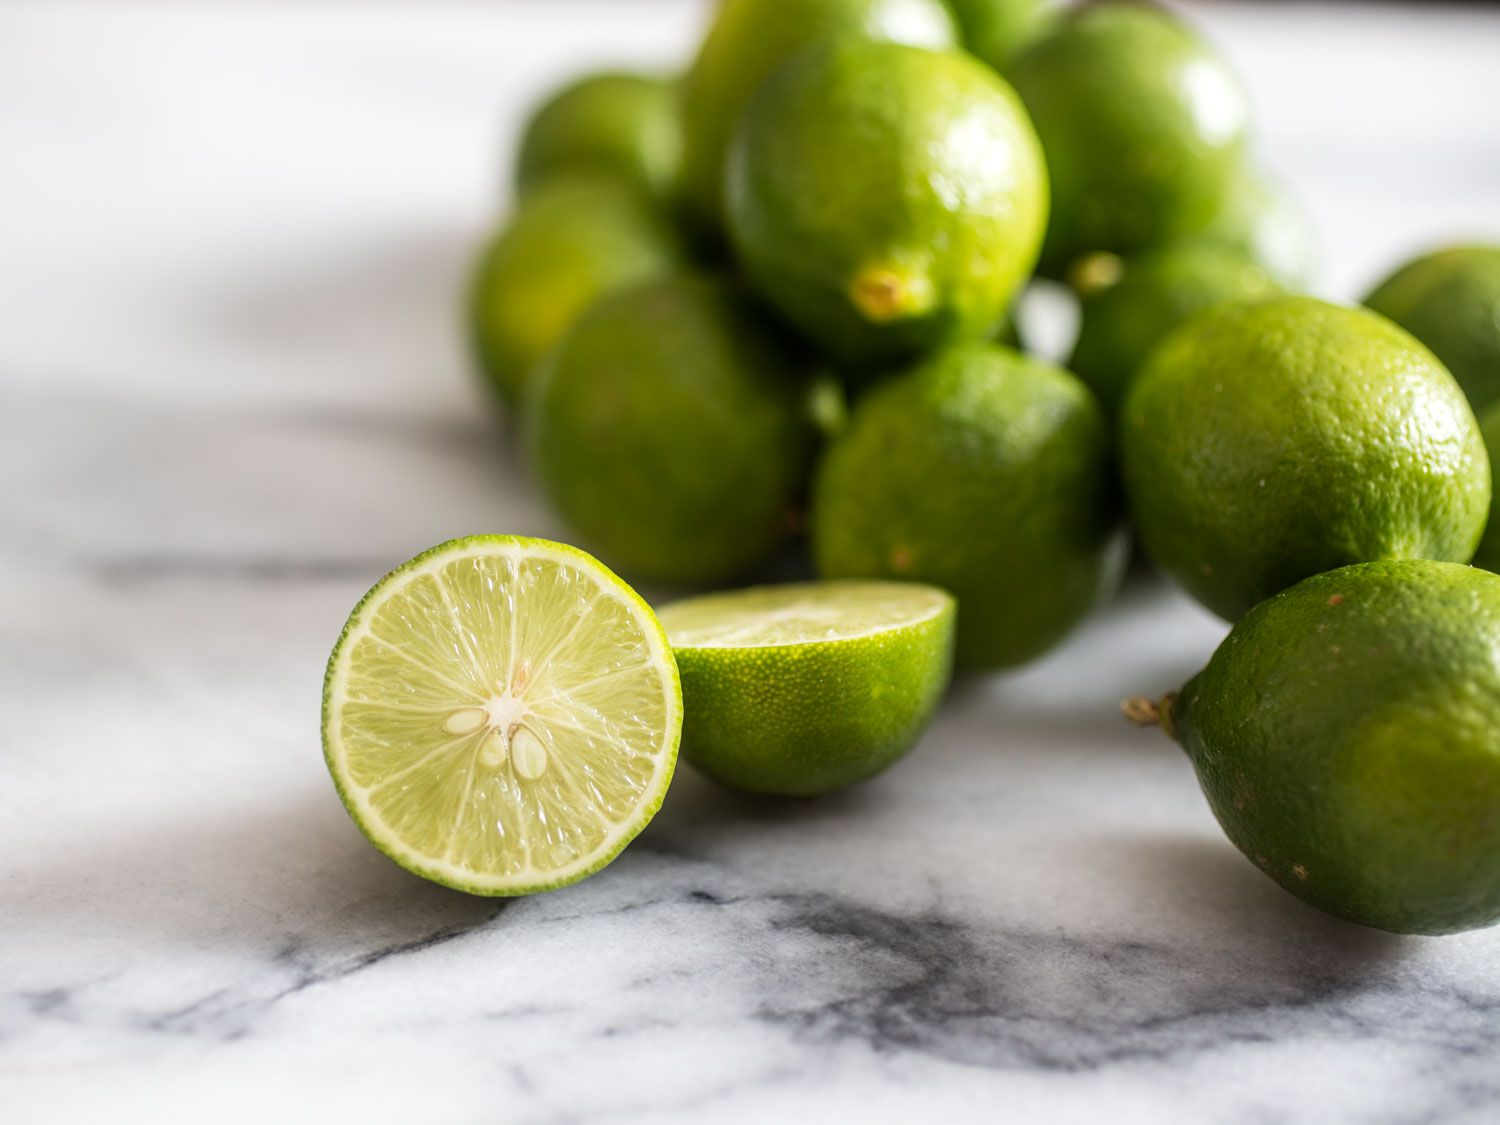 Key limes on a marble countertop. One lime is cut in half.